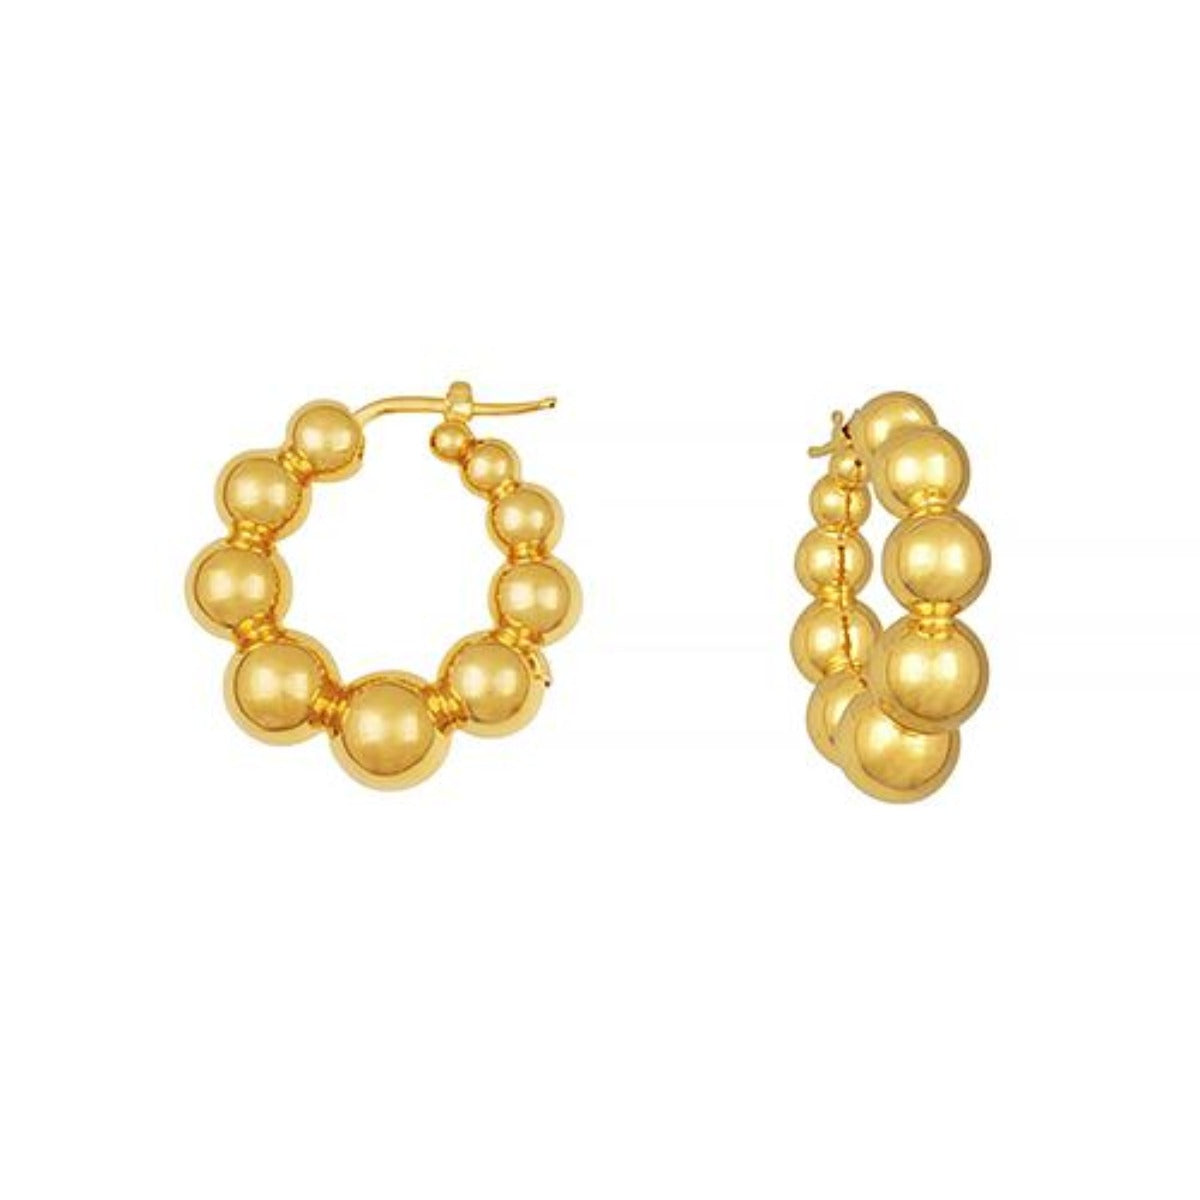 18k Gold Mod Hoop Earrings, SOLD